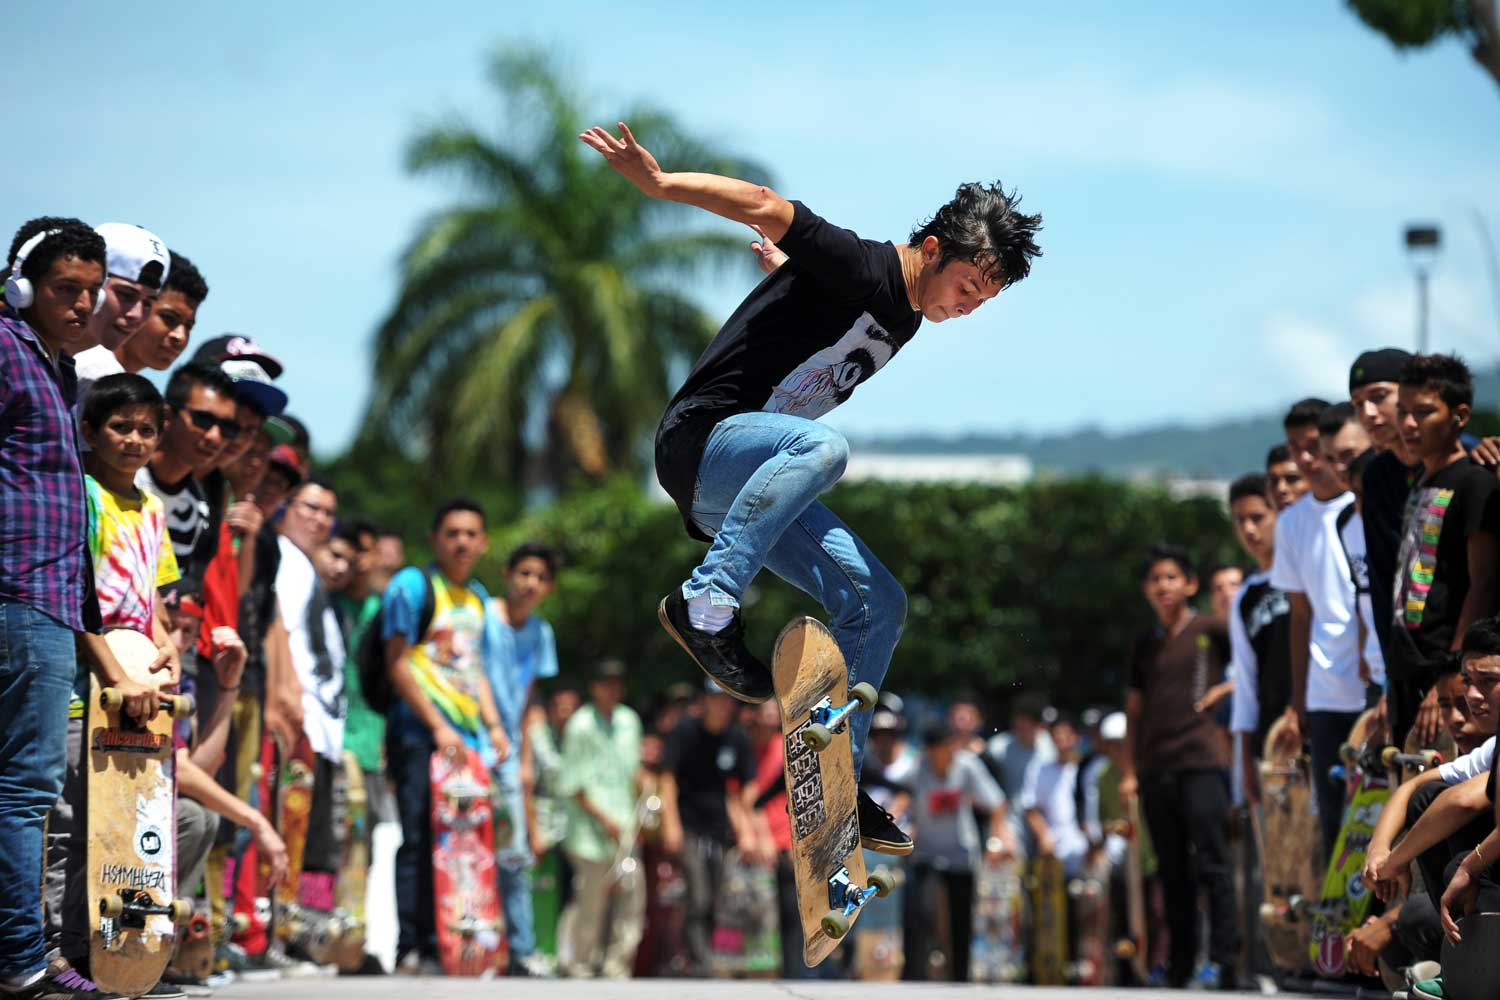 A skateboarder pops tricks in the streets of San Salvador, El Salvador.